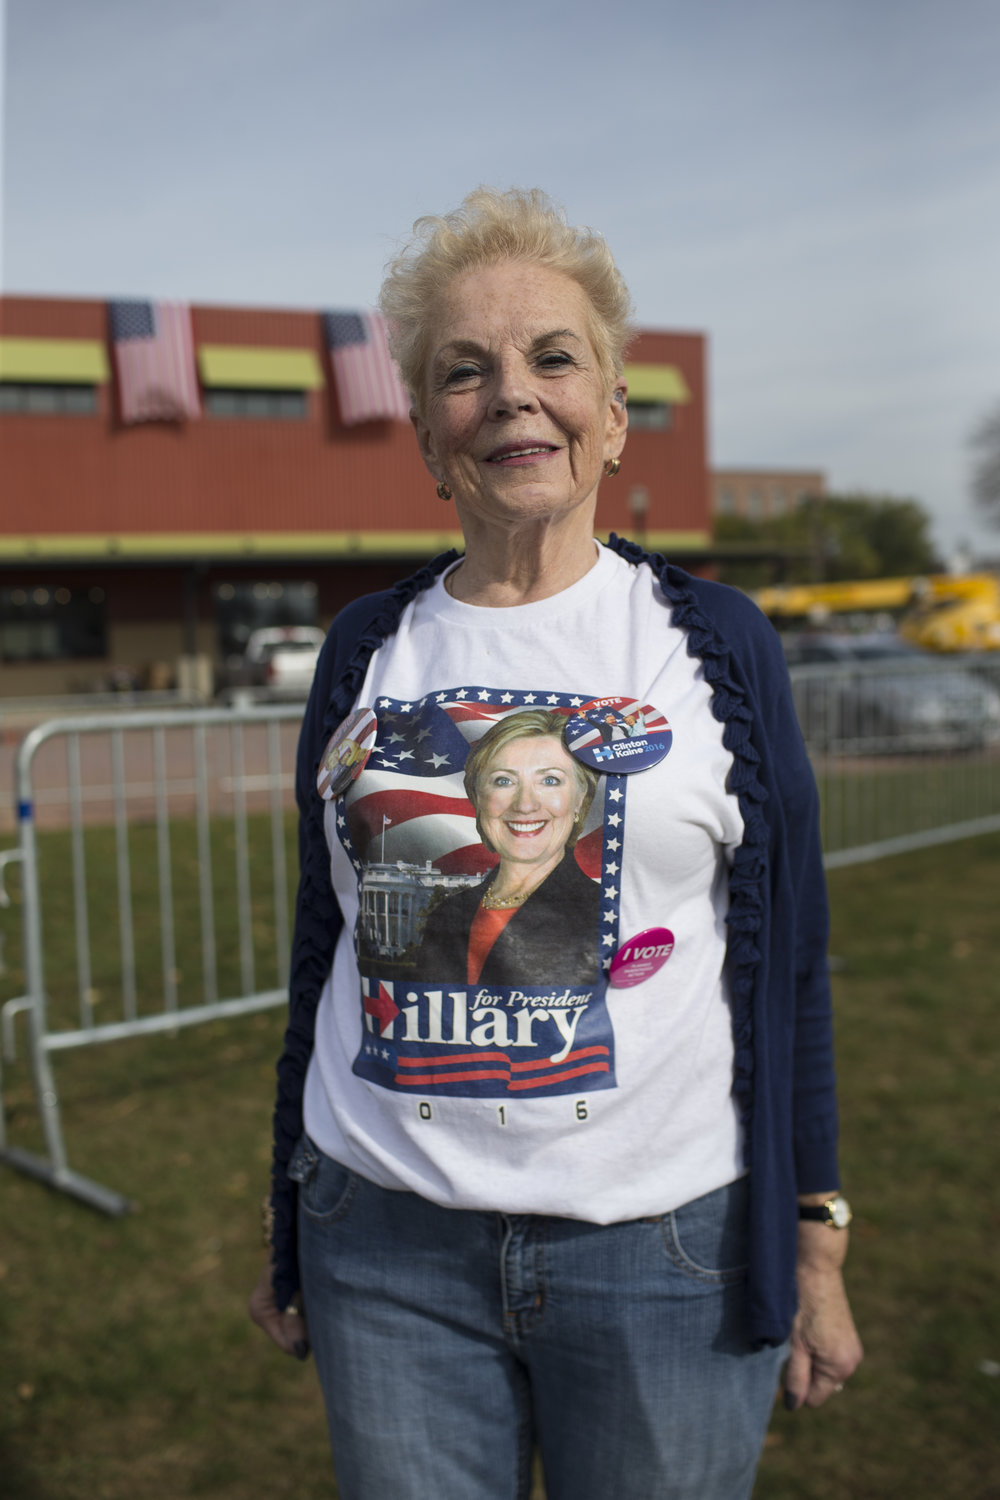 A woman poses for a photo following a Hillary Clinton Rally in Cedar Rapids, Iowa on Oct. 28, 2016. The rally was hosted in front of the NewBo City Market.